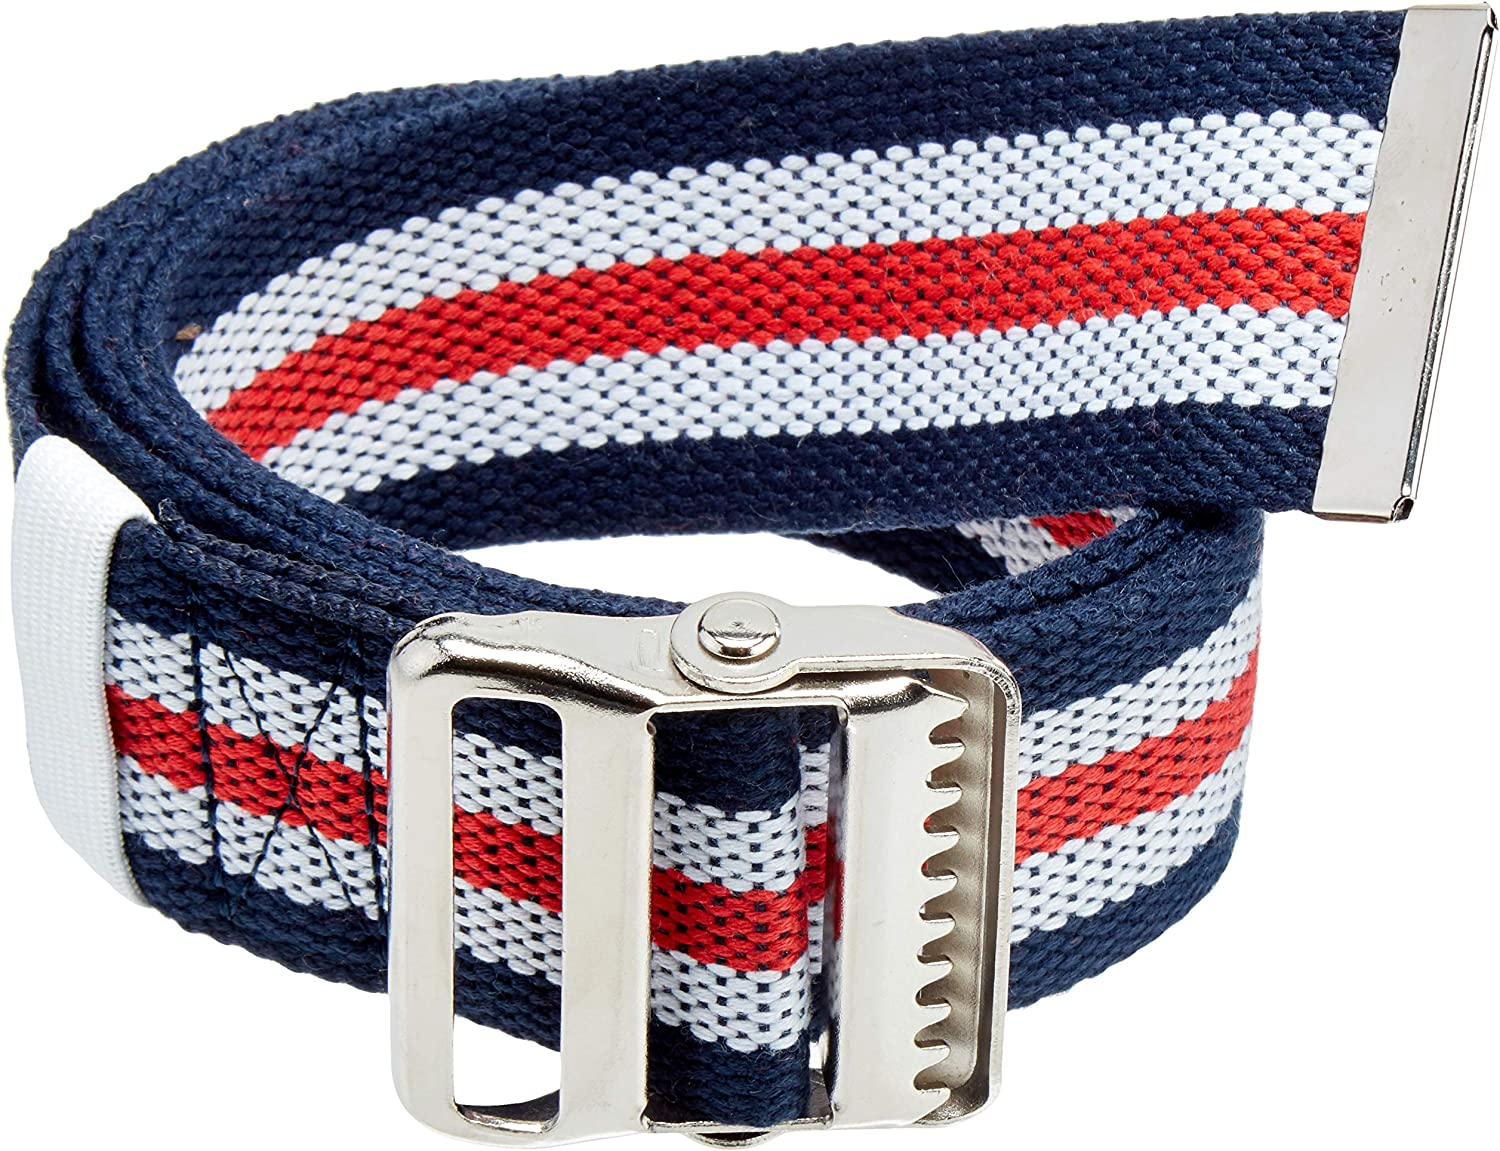 Transfer Belt with Metal Max 40% OFF Buckle and Max 84% OFF LiftAid by Walkin -